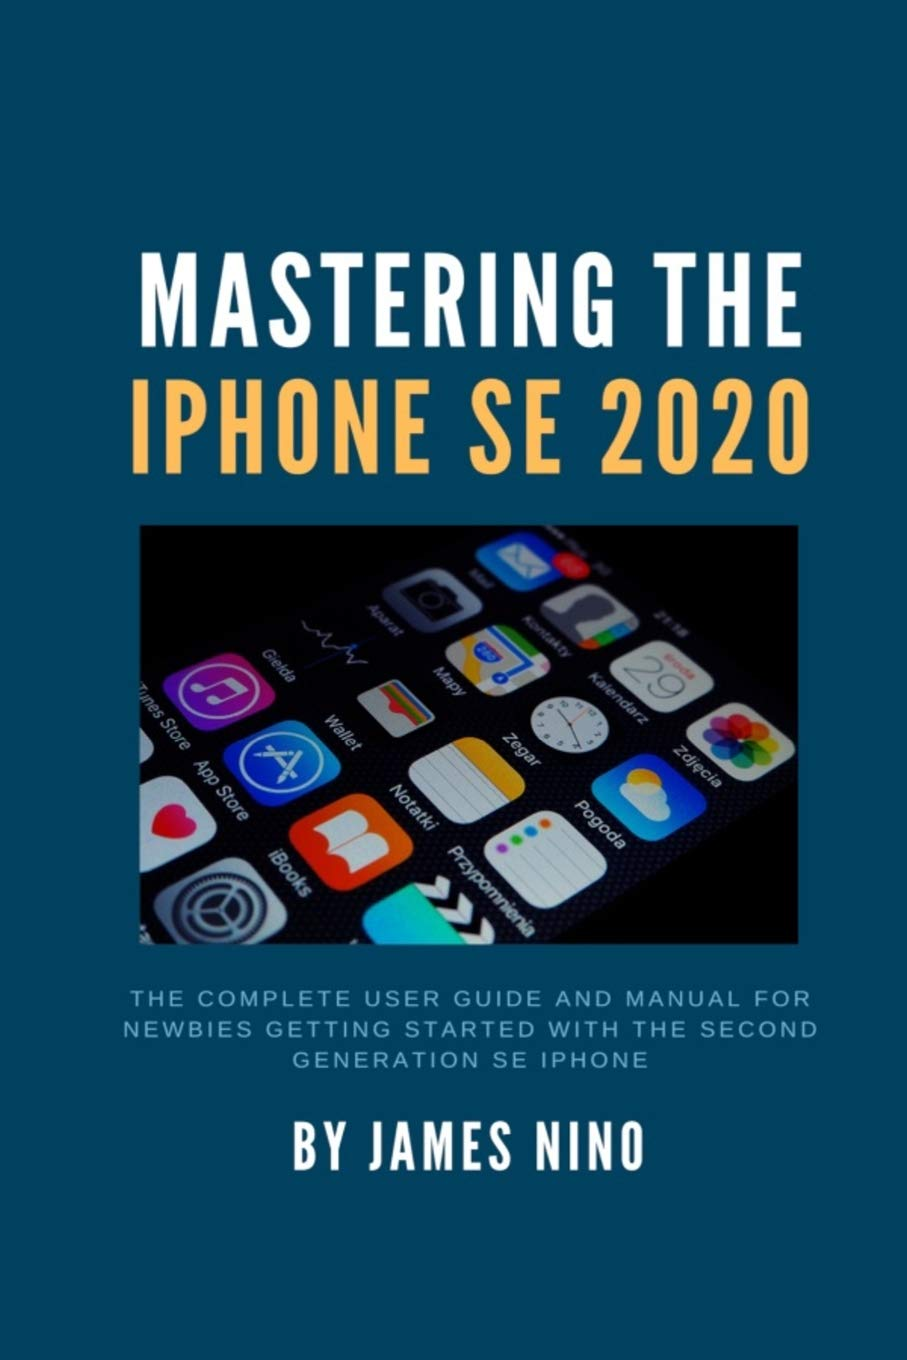 Image OfMastering The IPhone SE 2020: The Complete User Guide And Manual For Newbies Getting Started With The Second Generation SE...